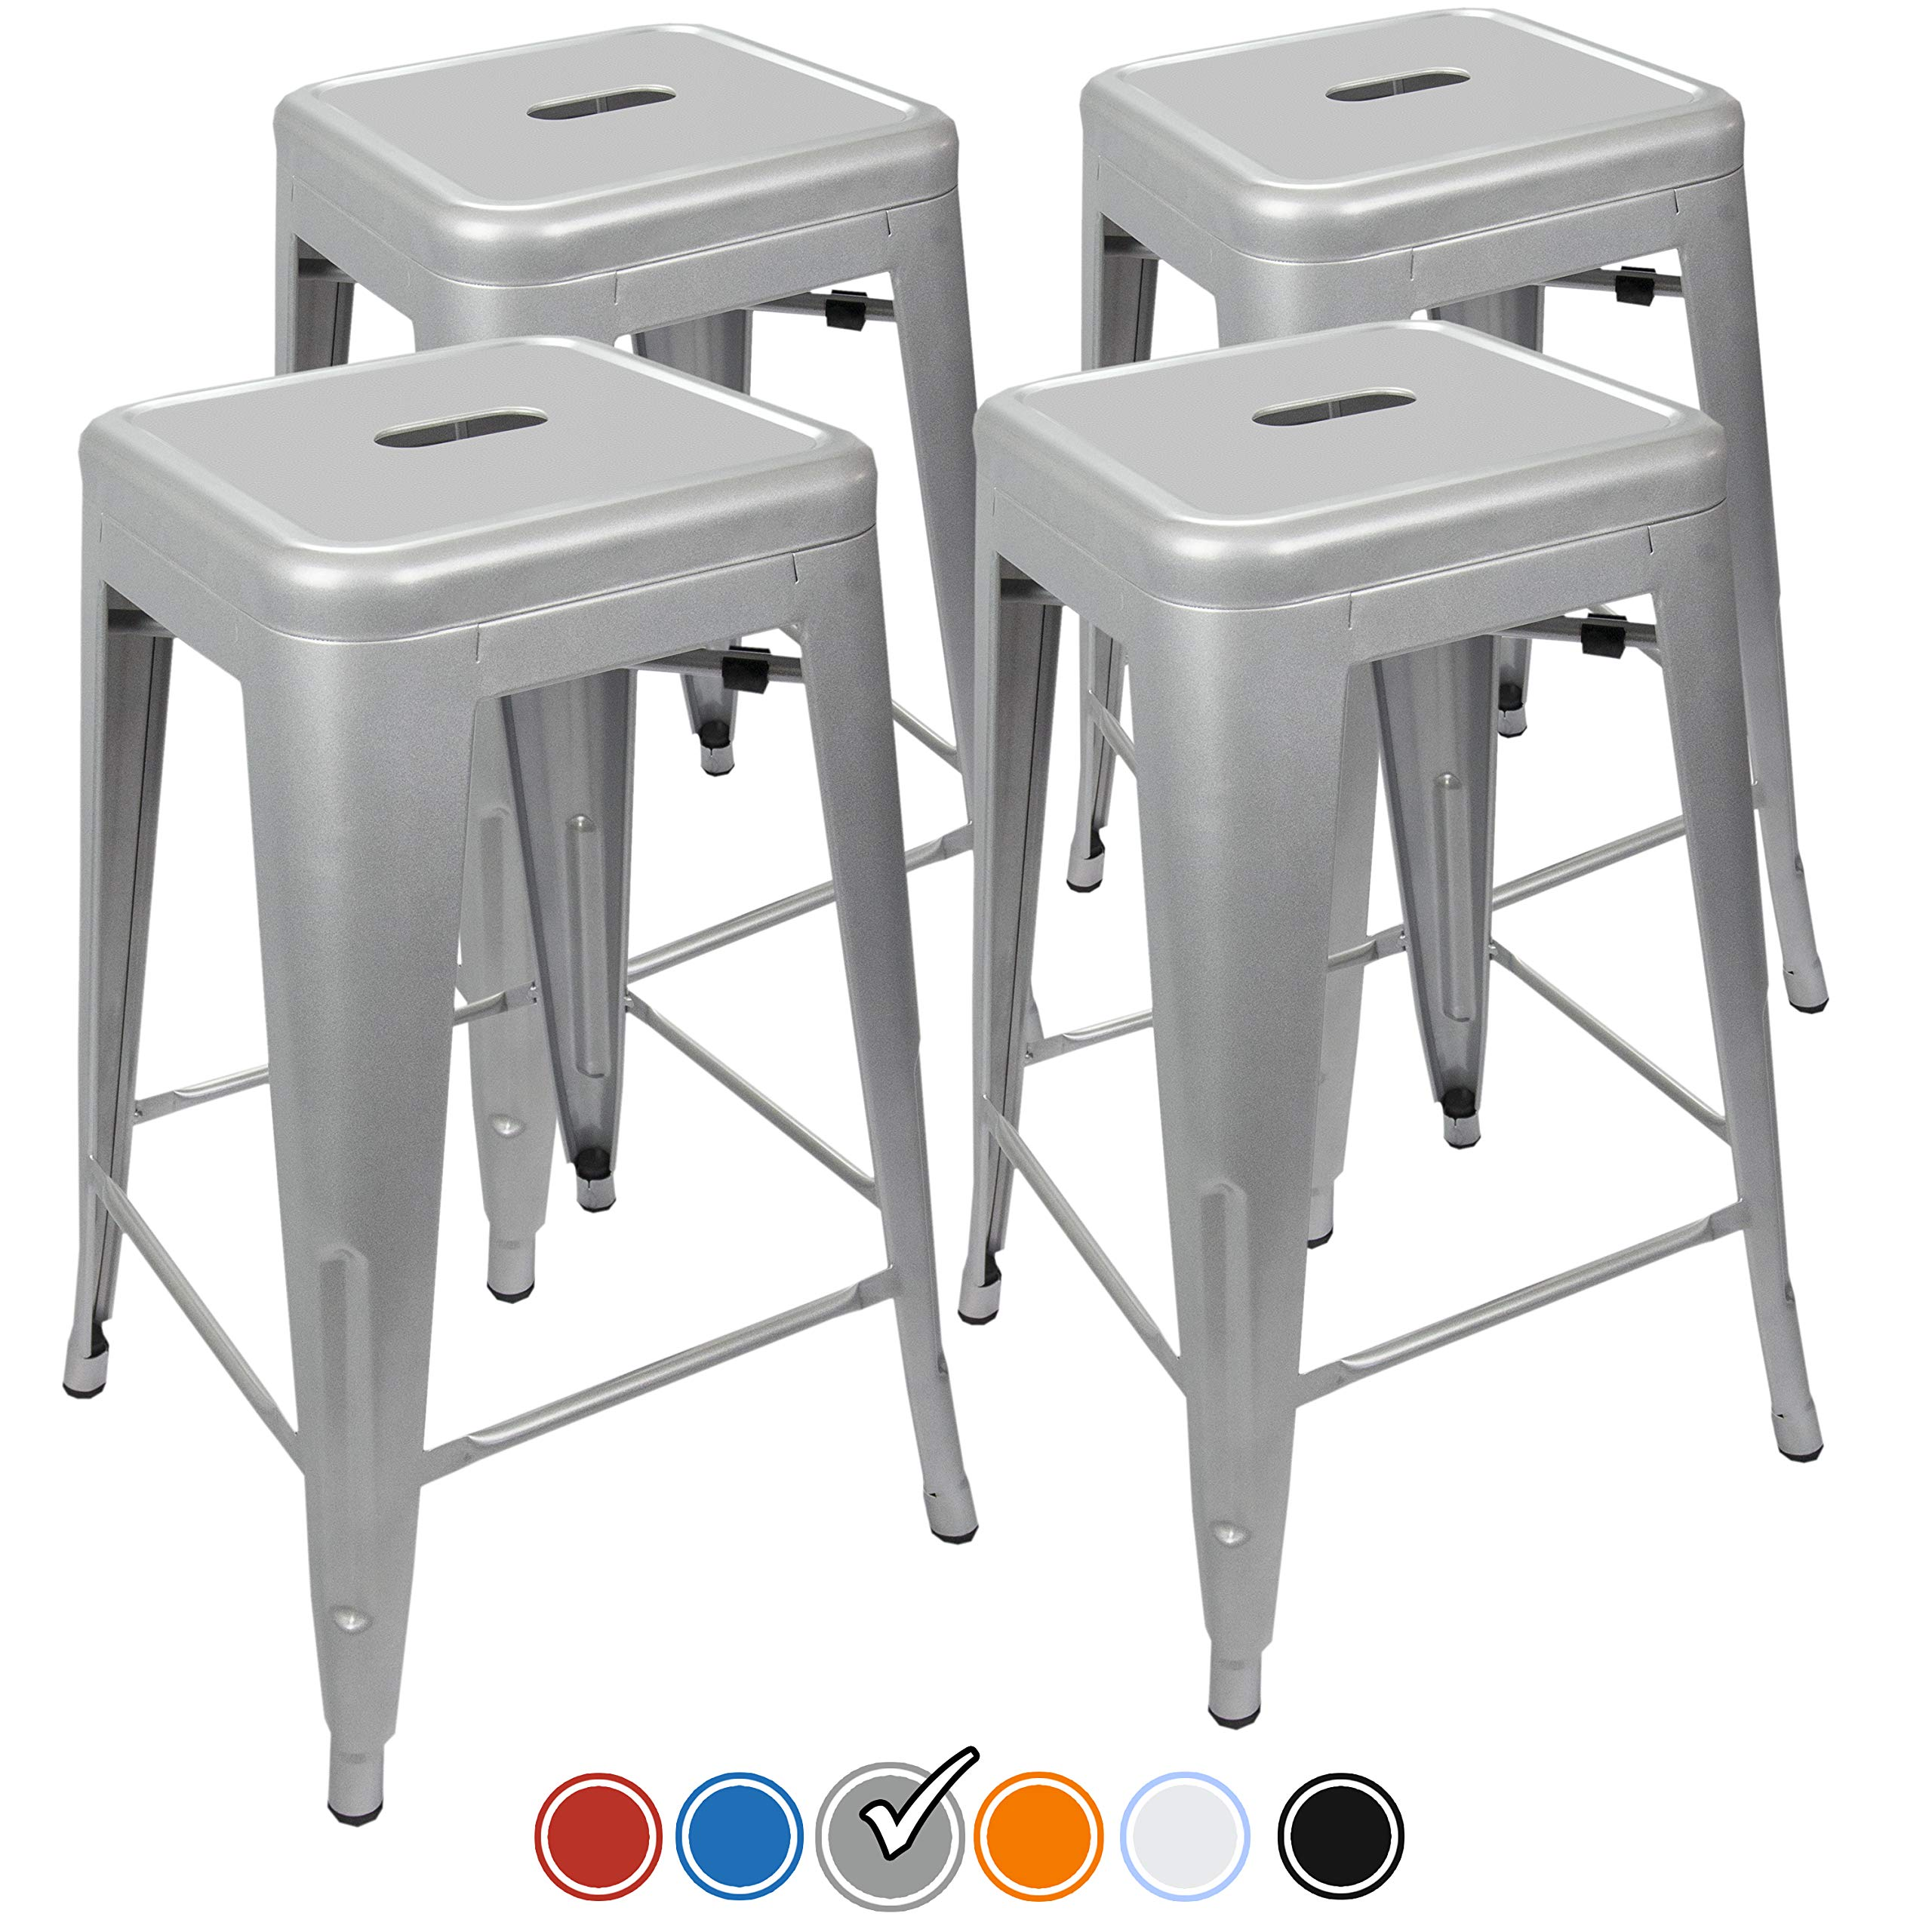 UrbanMod 24'' Counter Height Bar Stools 330lb Capacity Gray Kitchen Chair Island Outdoor Industrial Galvanized Metal, Silver by UrbanMod